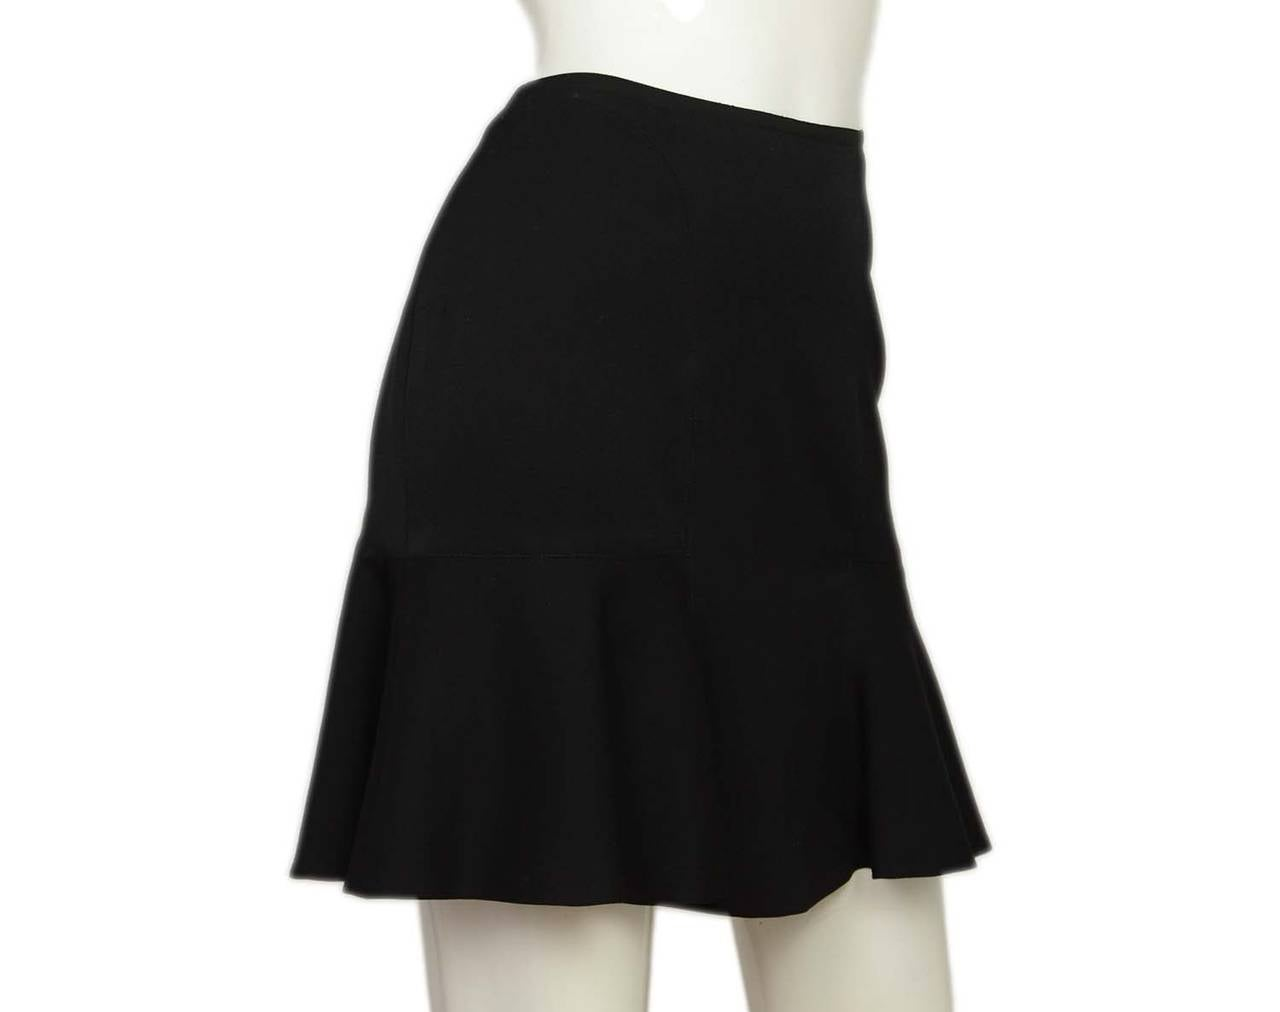 You searched for: black wool skirt! Etsy is the home to thousands of handmade, vintage, and one-of-a-kind products and gifts related to your search. No matter what you're looking for or where you are in the world, our global marketplace of sellers can help you find unique and affordable options. Let's get started!